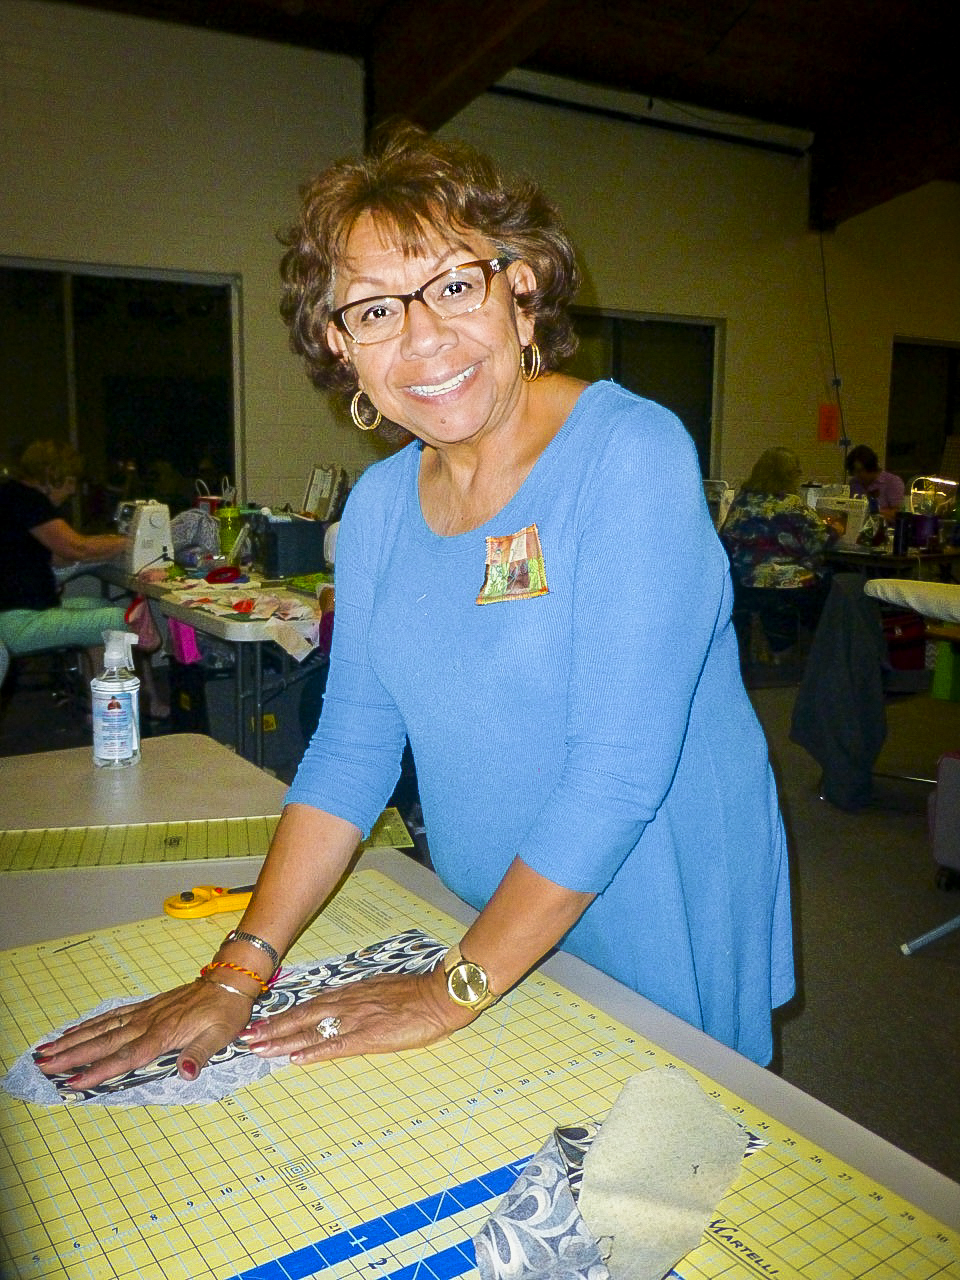 measuring quilting